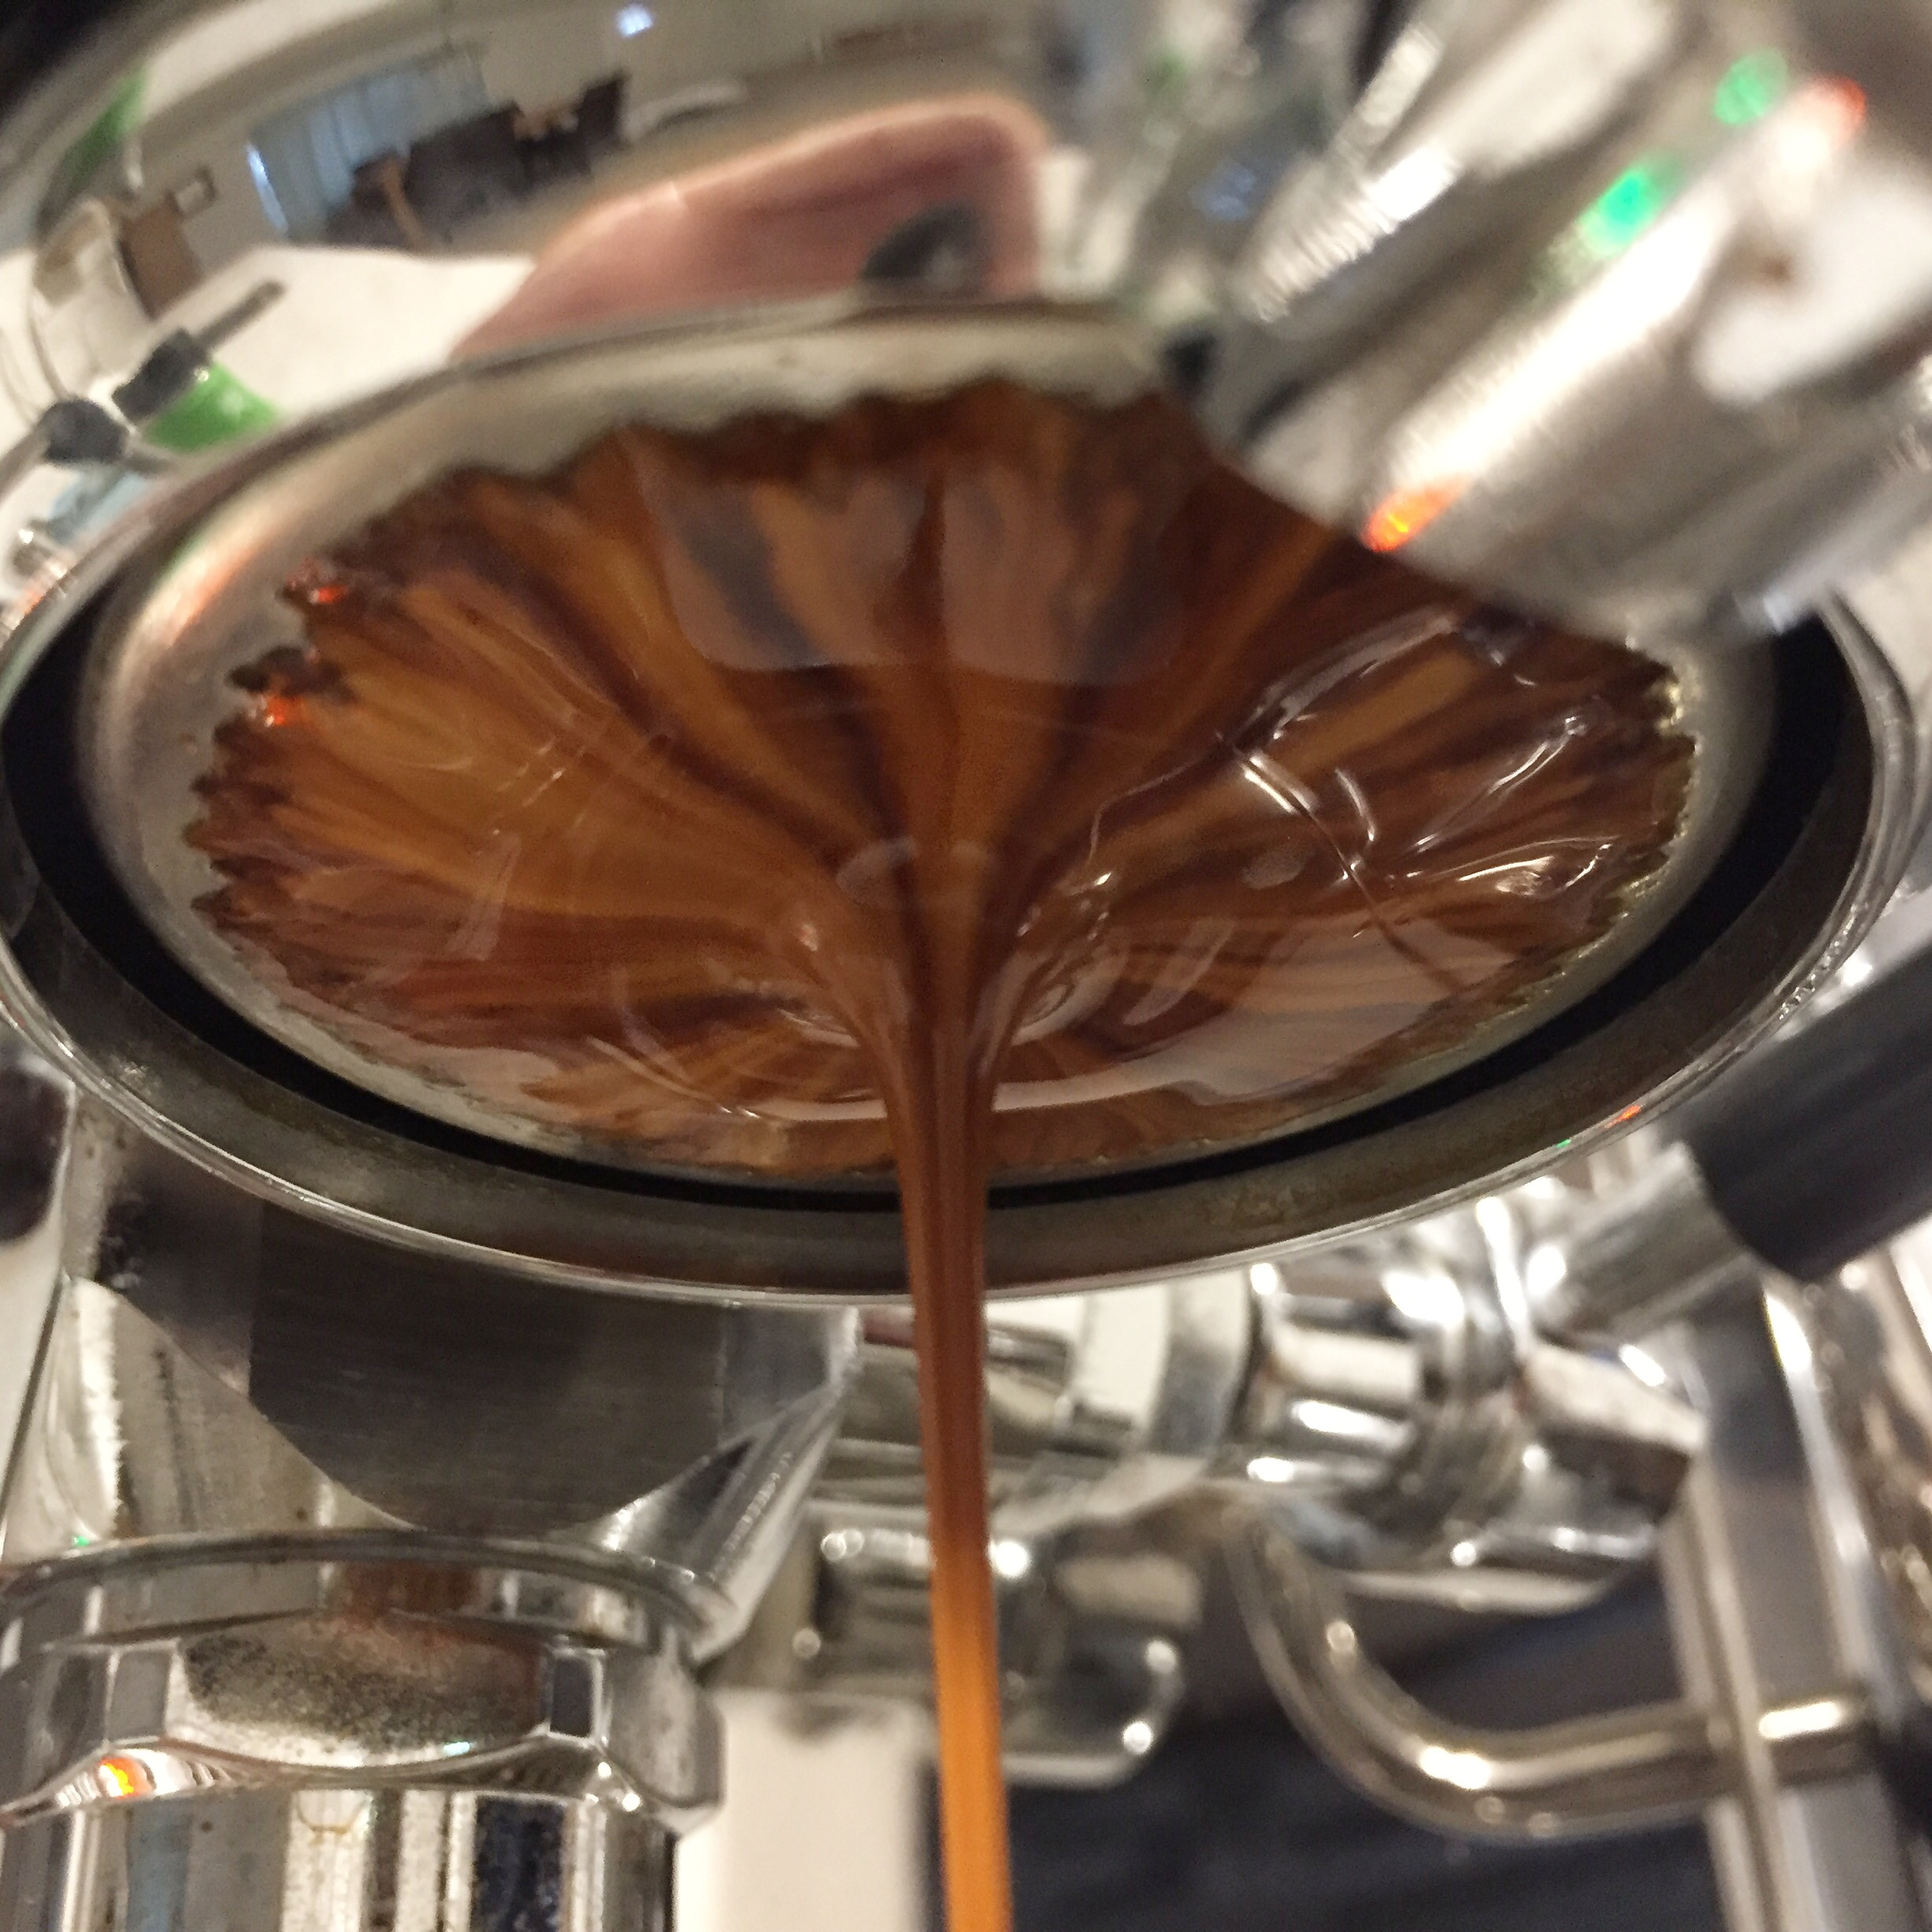 This shot shows a (mostly) even, dense, syrupy, rich flow.